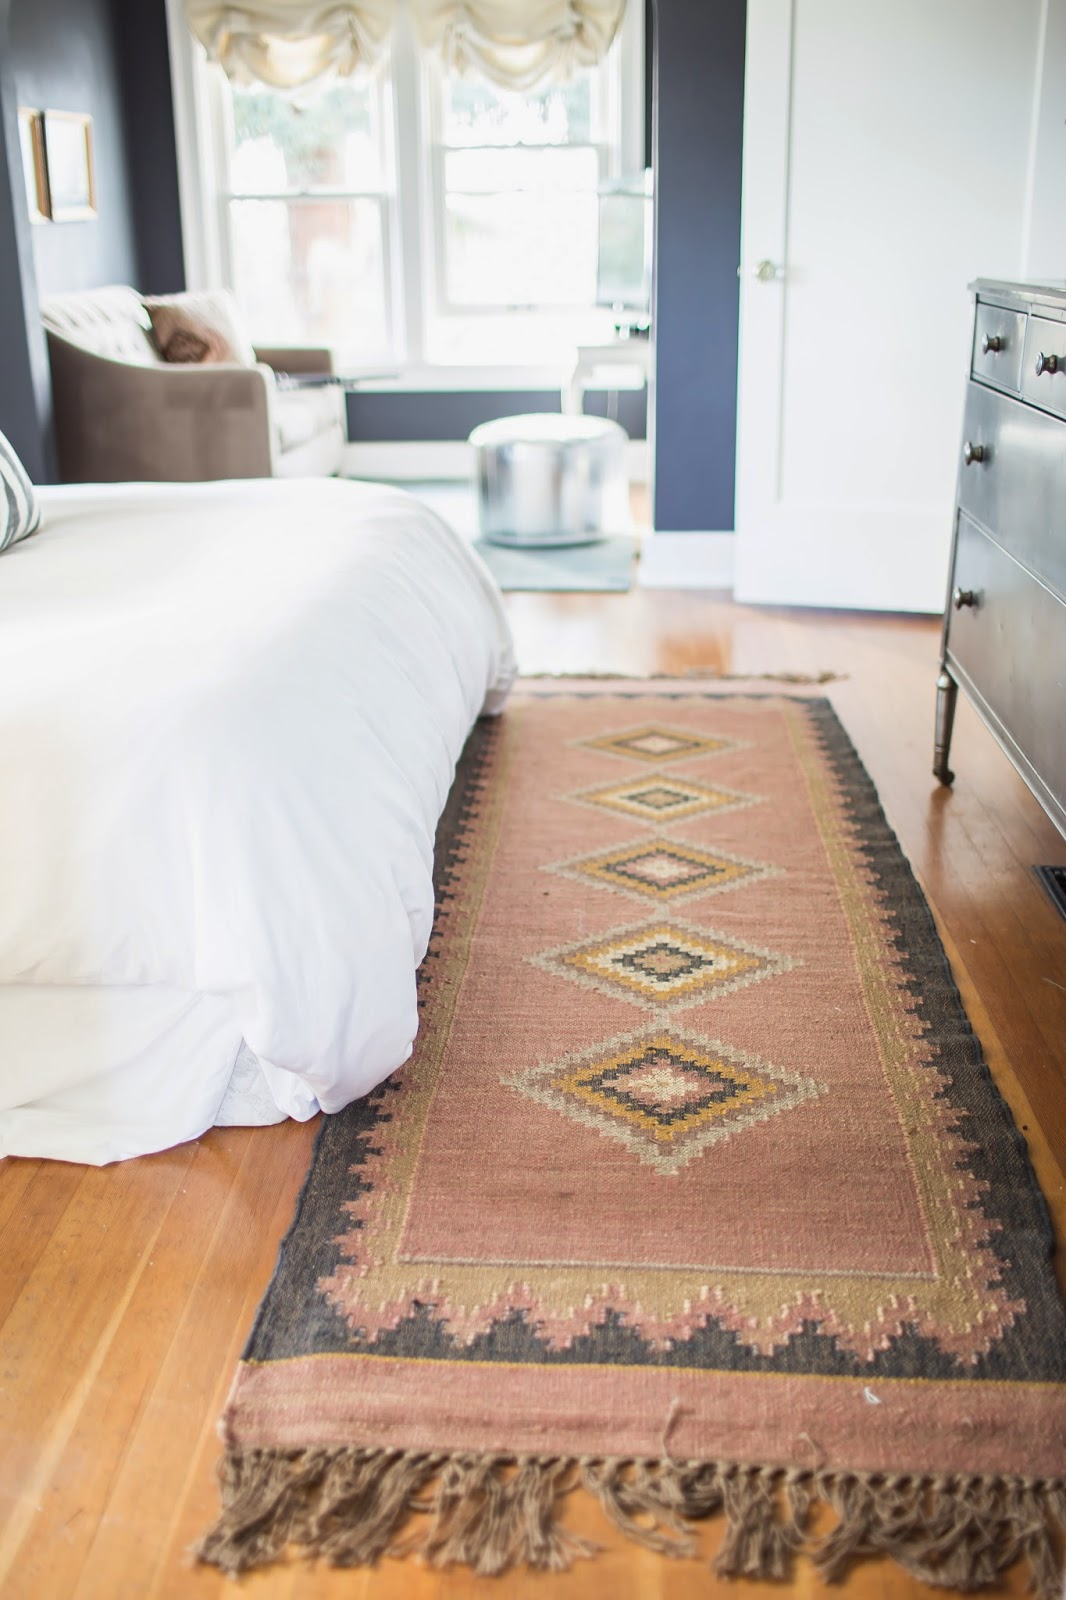 My sweet savannah a stylist 39 s fashionable home tour for Rug in bedroom